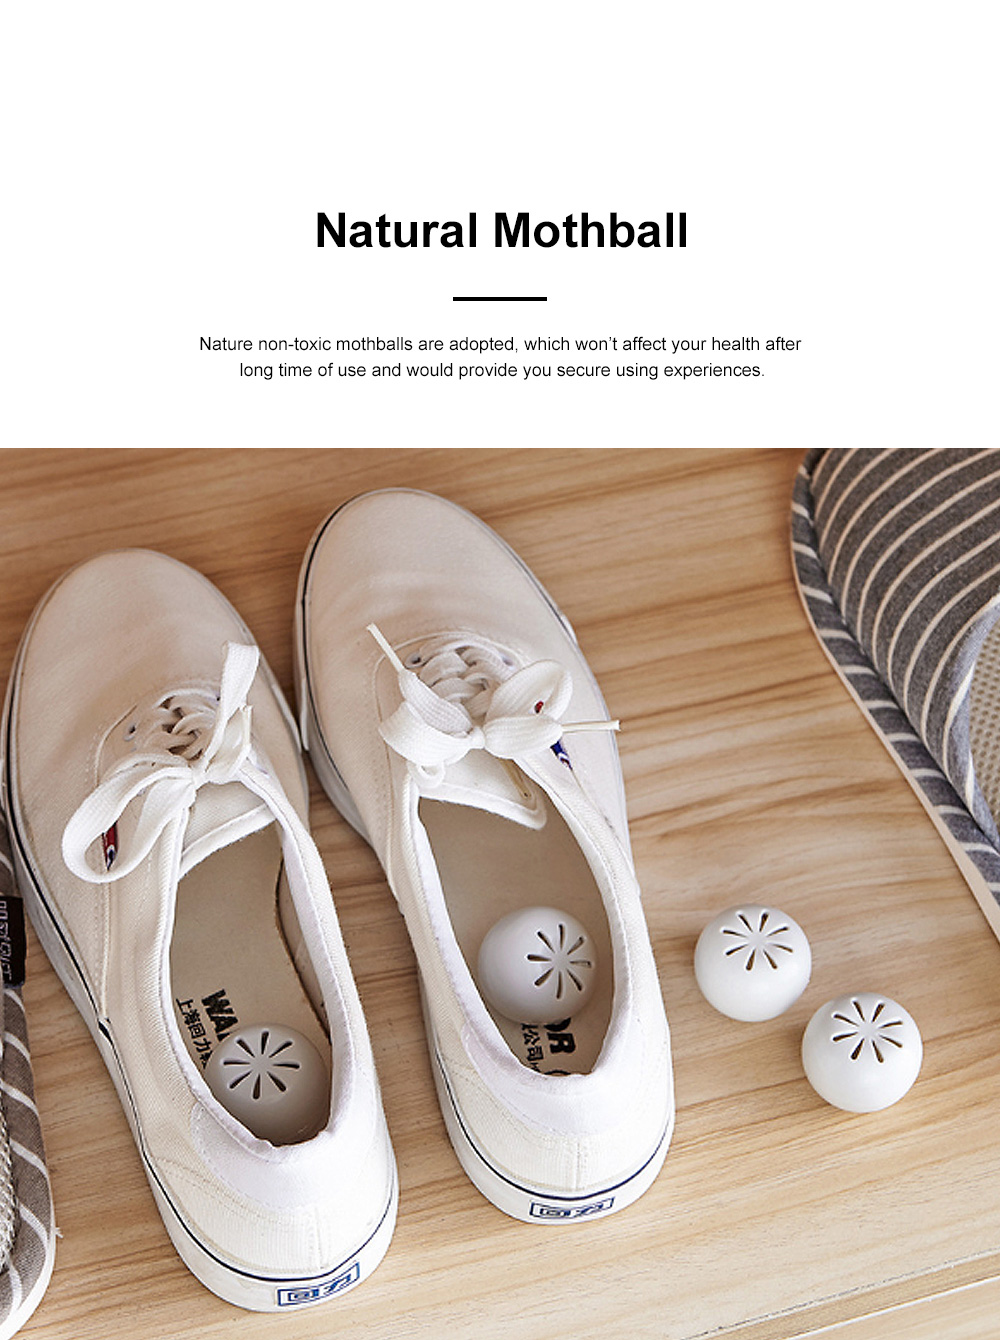 Small Exquisite Closet Wardrobe Bookcase Room Insect Prevention Mothproof Moisture-proof 8PCS Mothball Camphor Ball Set 1